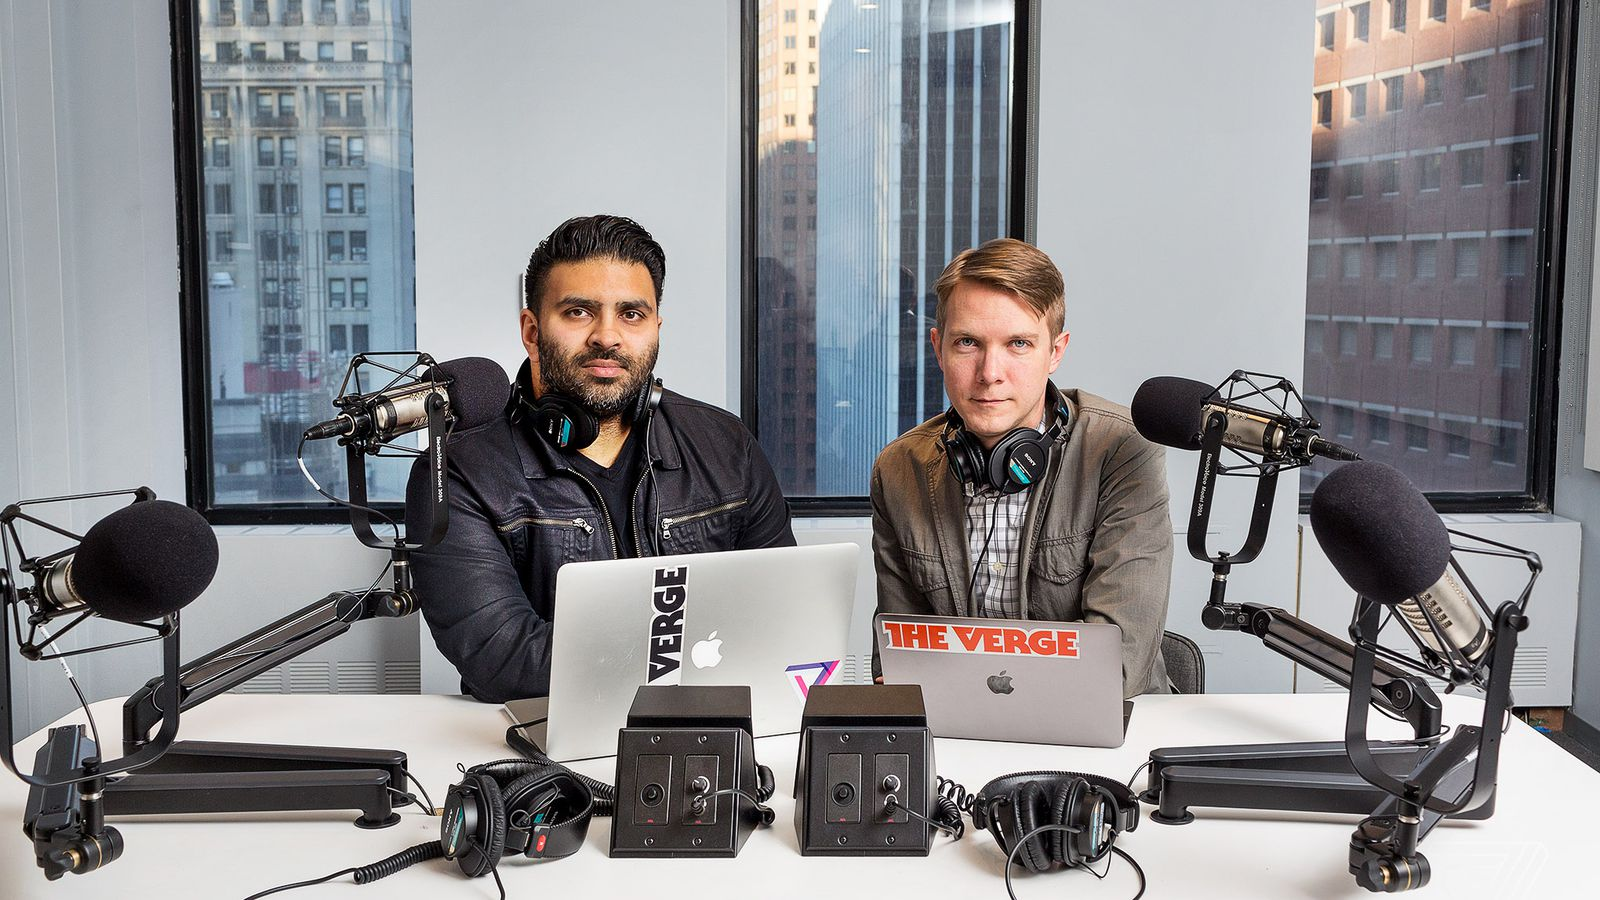 The Vergecast reunites at Code Conference